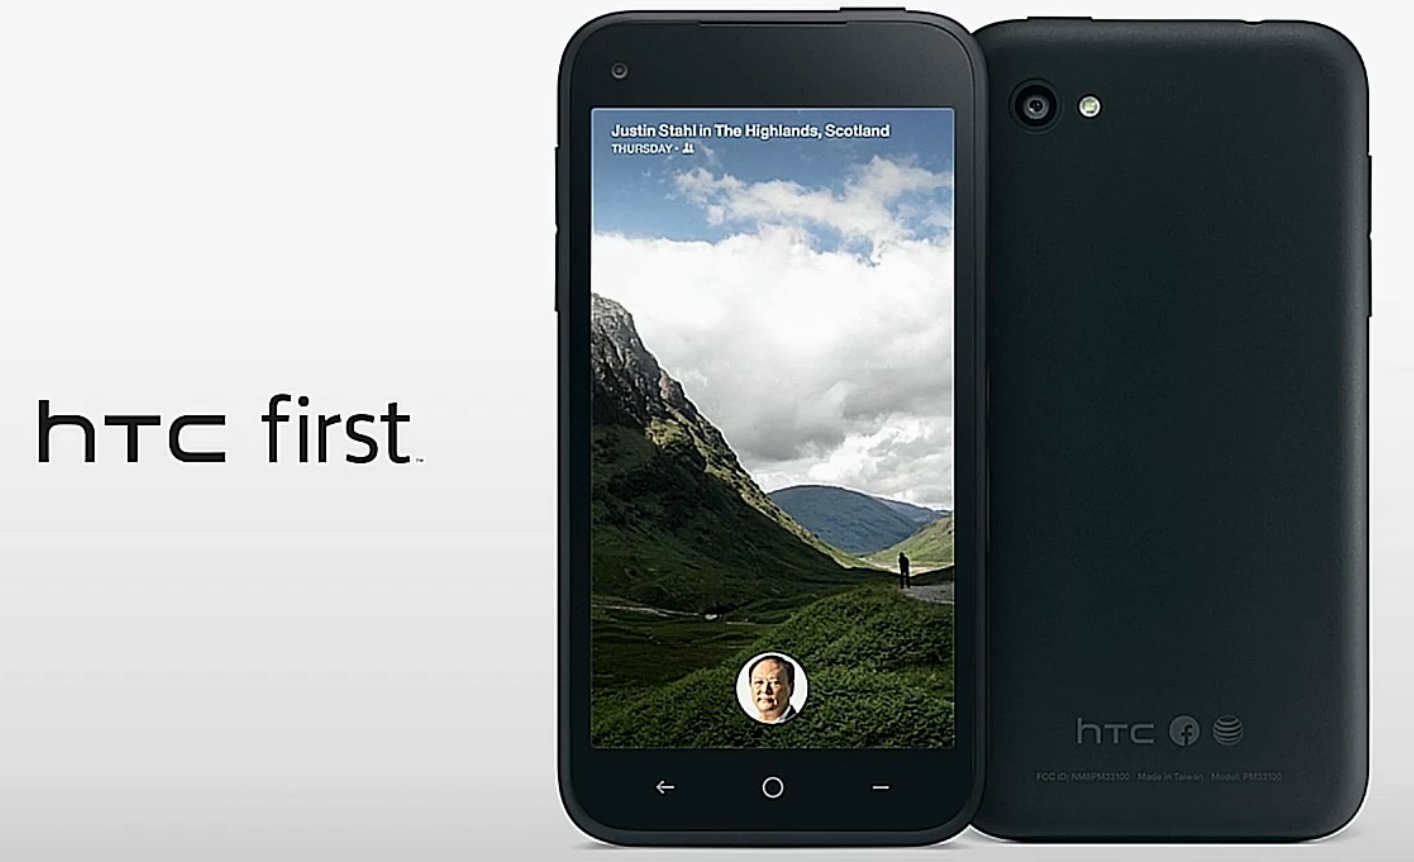 AT&T Free IMEI Unlock for HTC First for AT&T Network